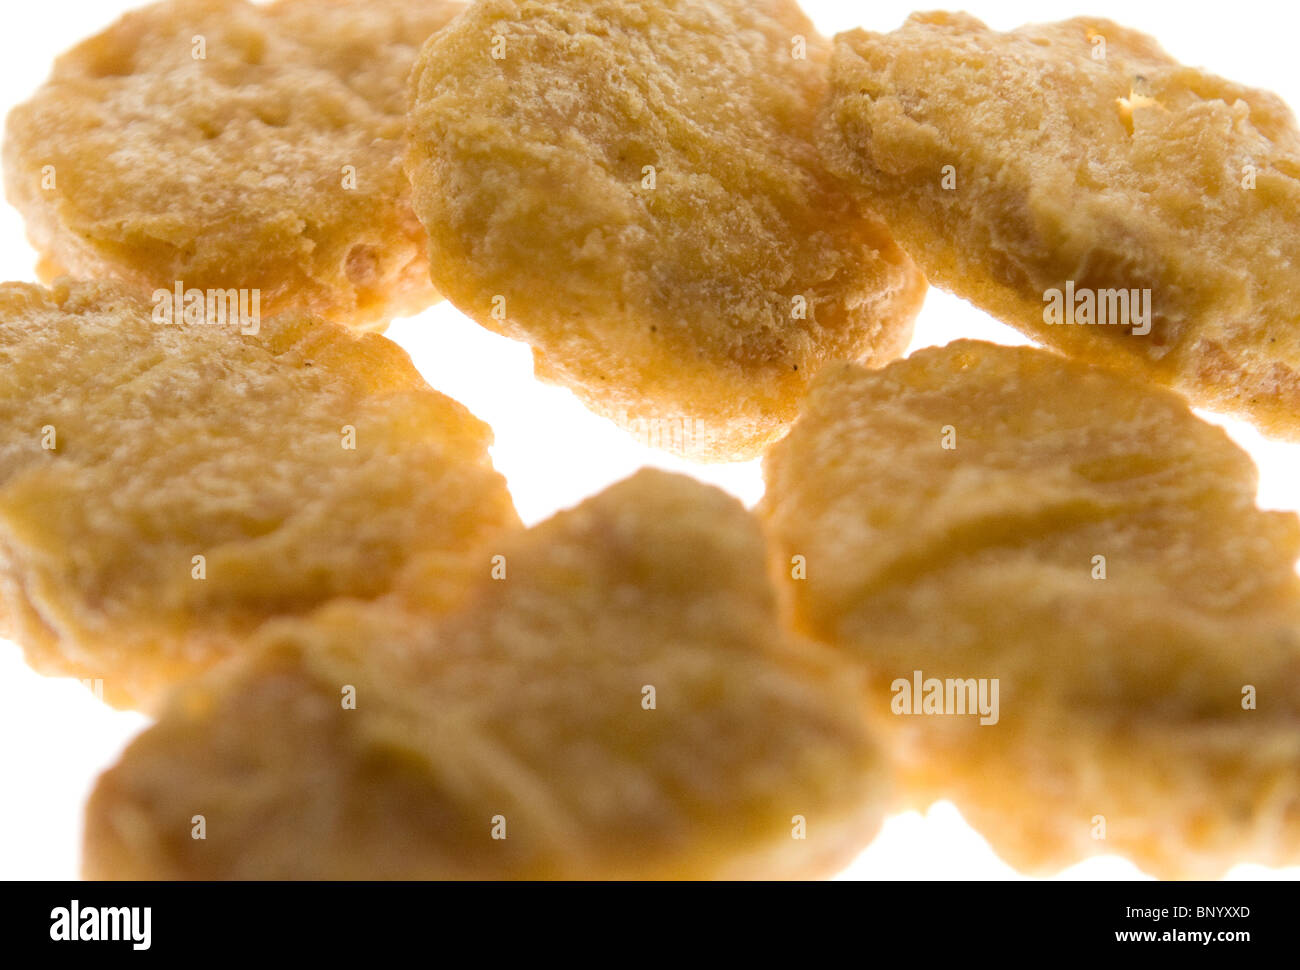 McDonald's chicken nuggets. - Stock Image